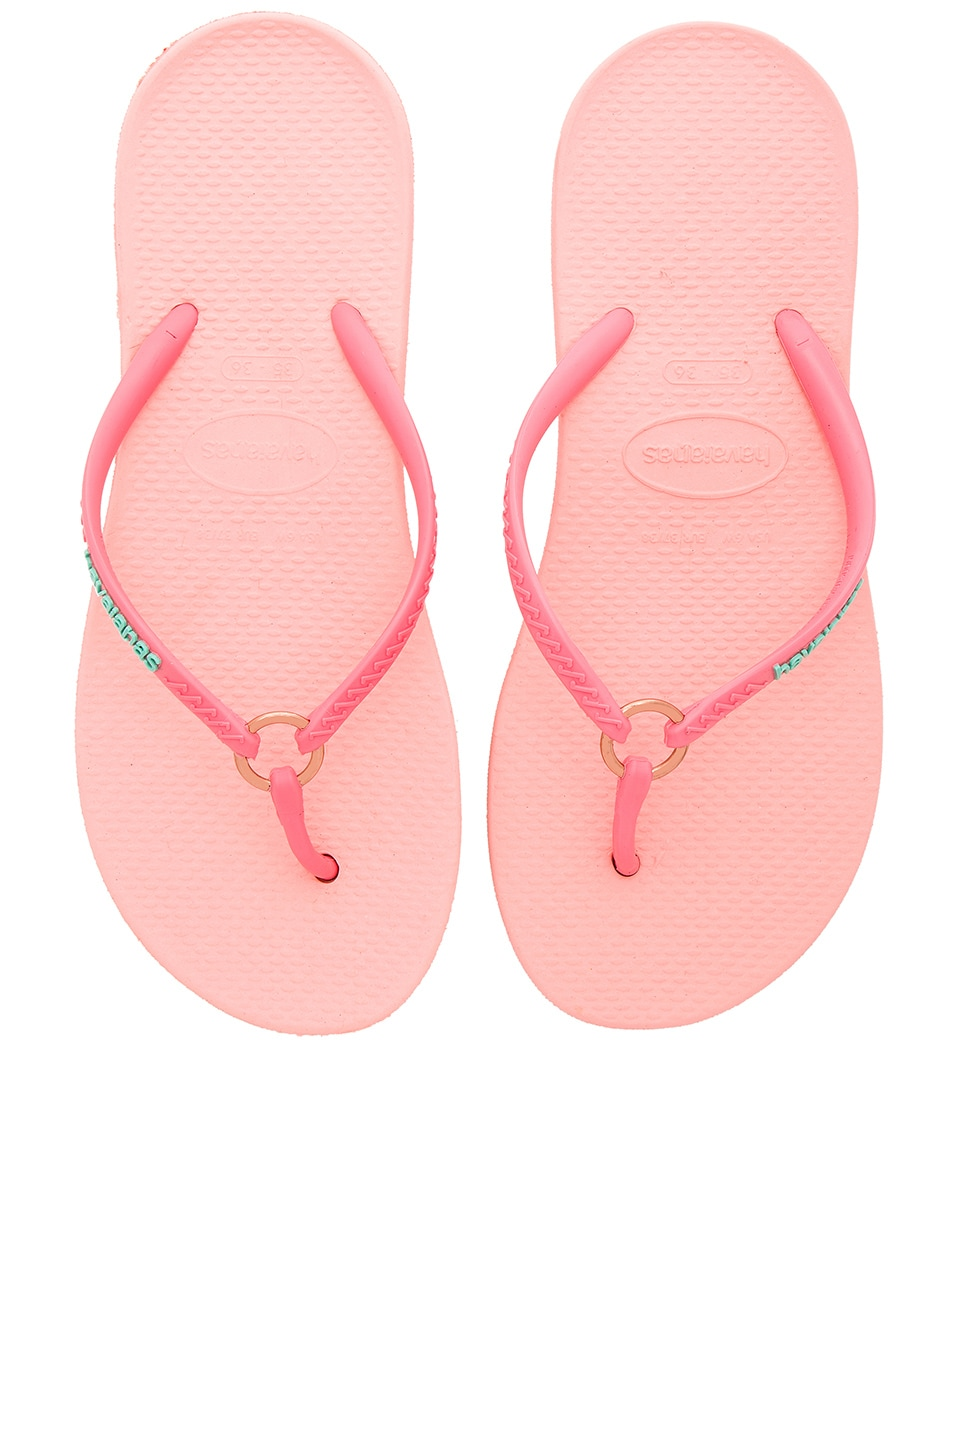 Havaianas Ring Flip Flop in Light Rose